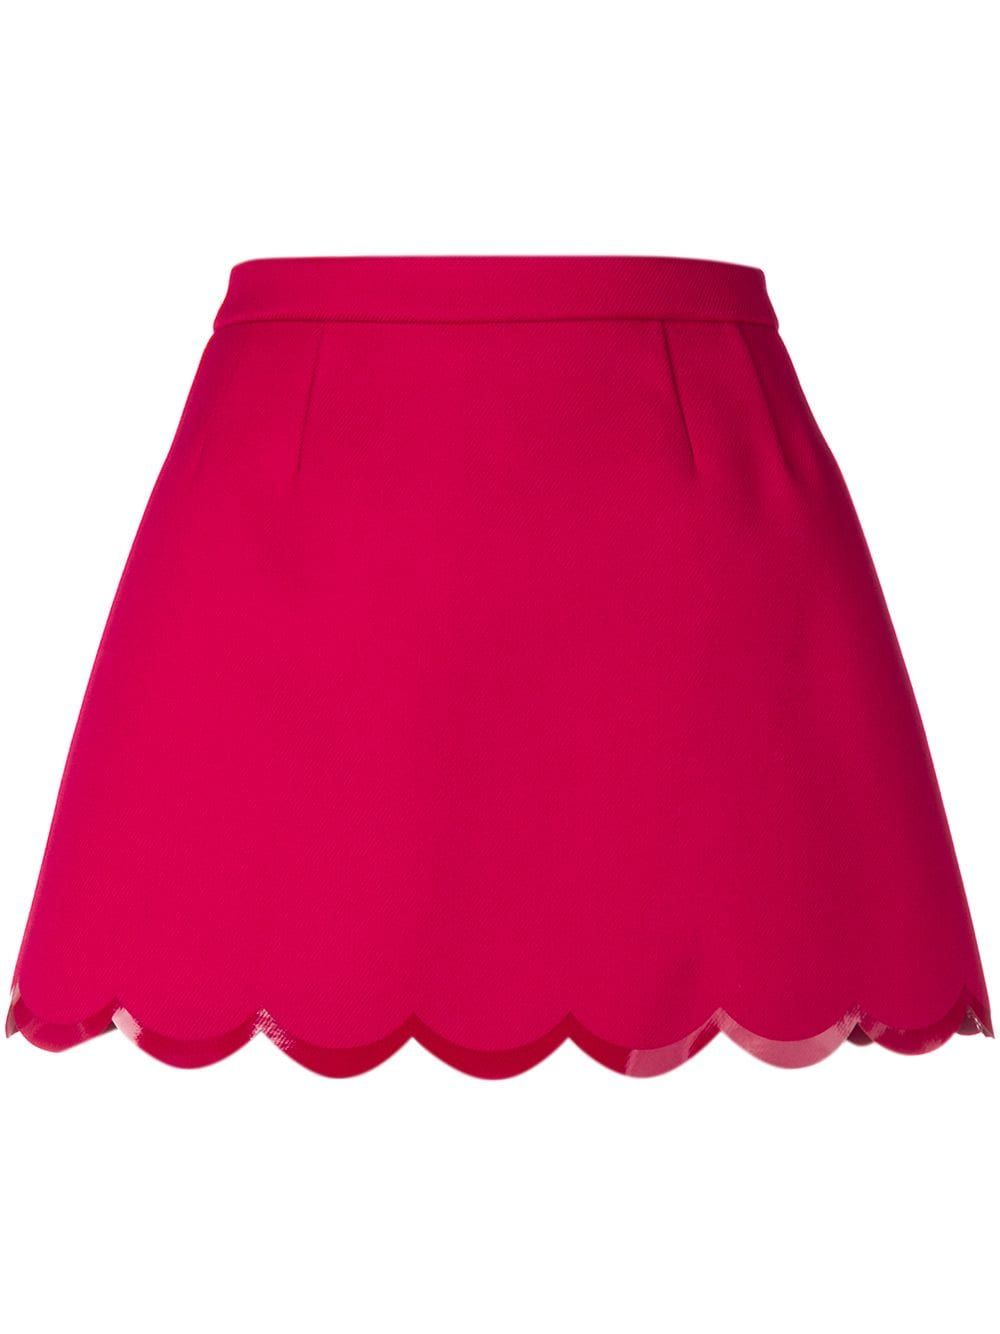 99c9d83a6a RED VALENTINO RED VALENTINO SCALLOPED HEM MINI SKIRT. #redvalentino #cloth